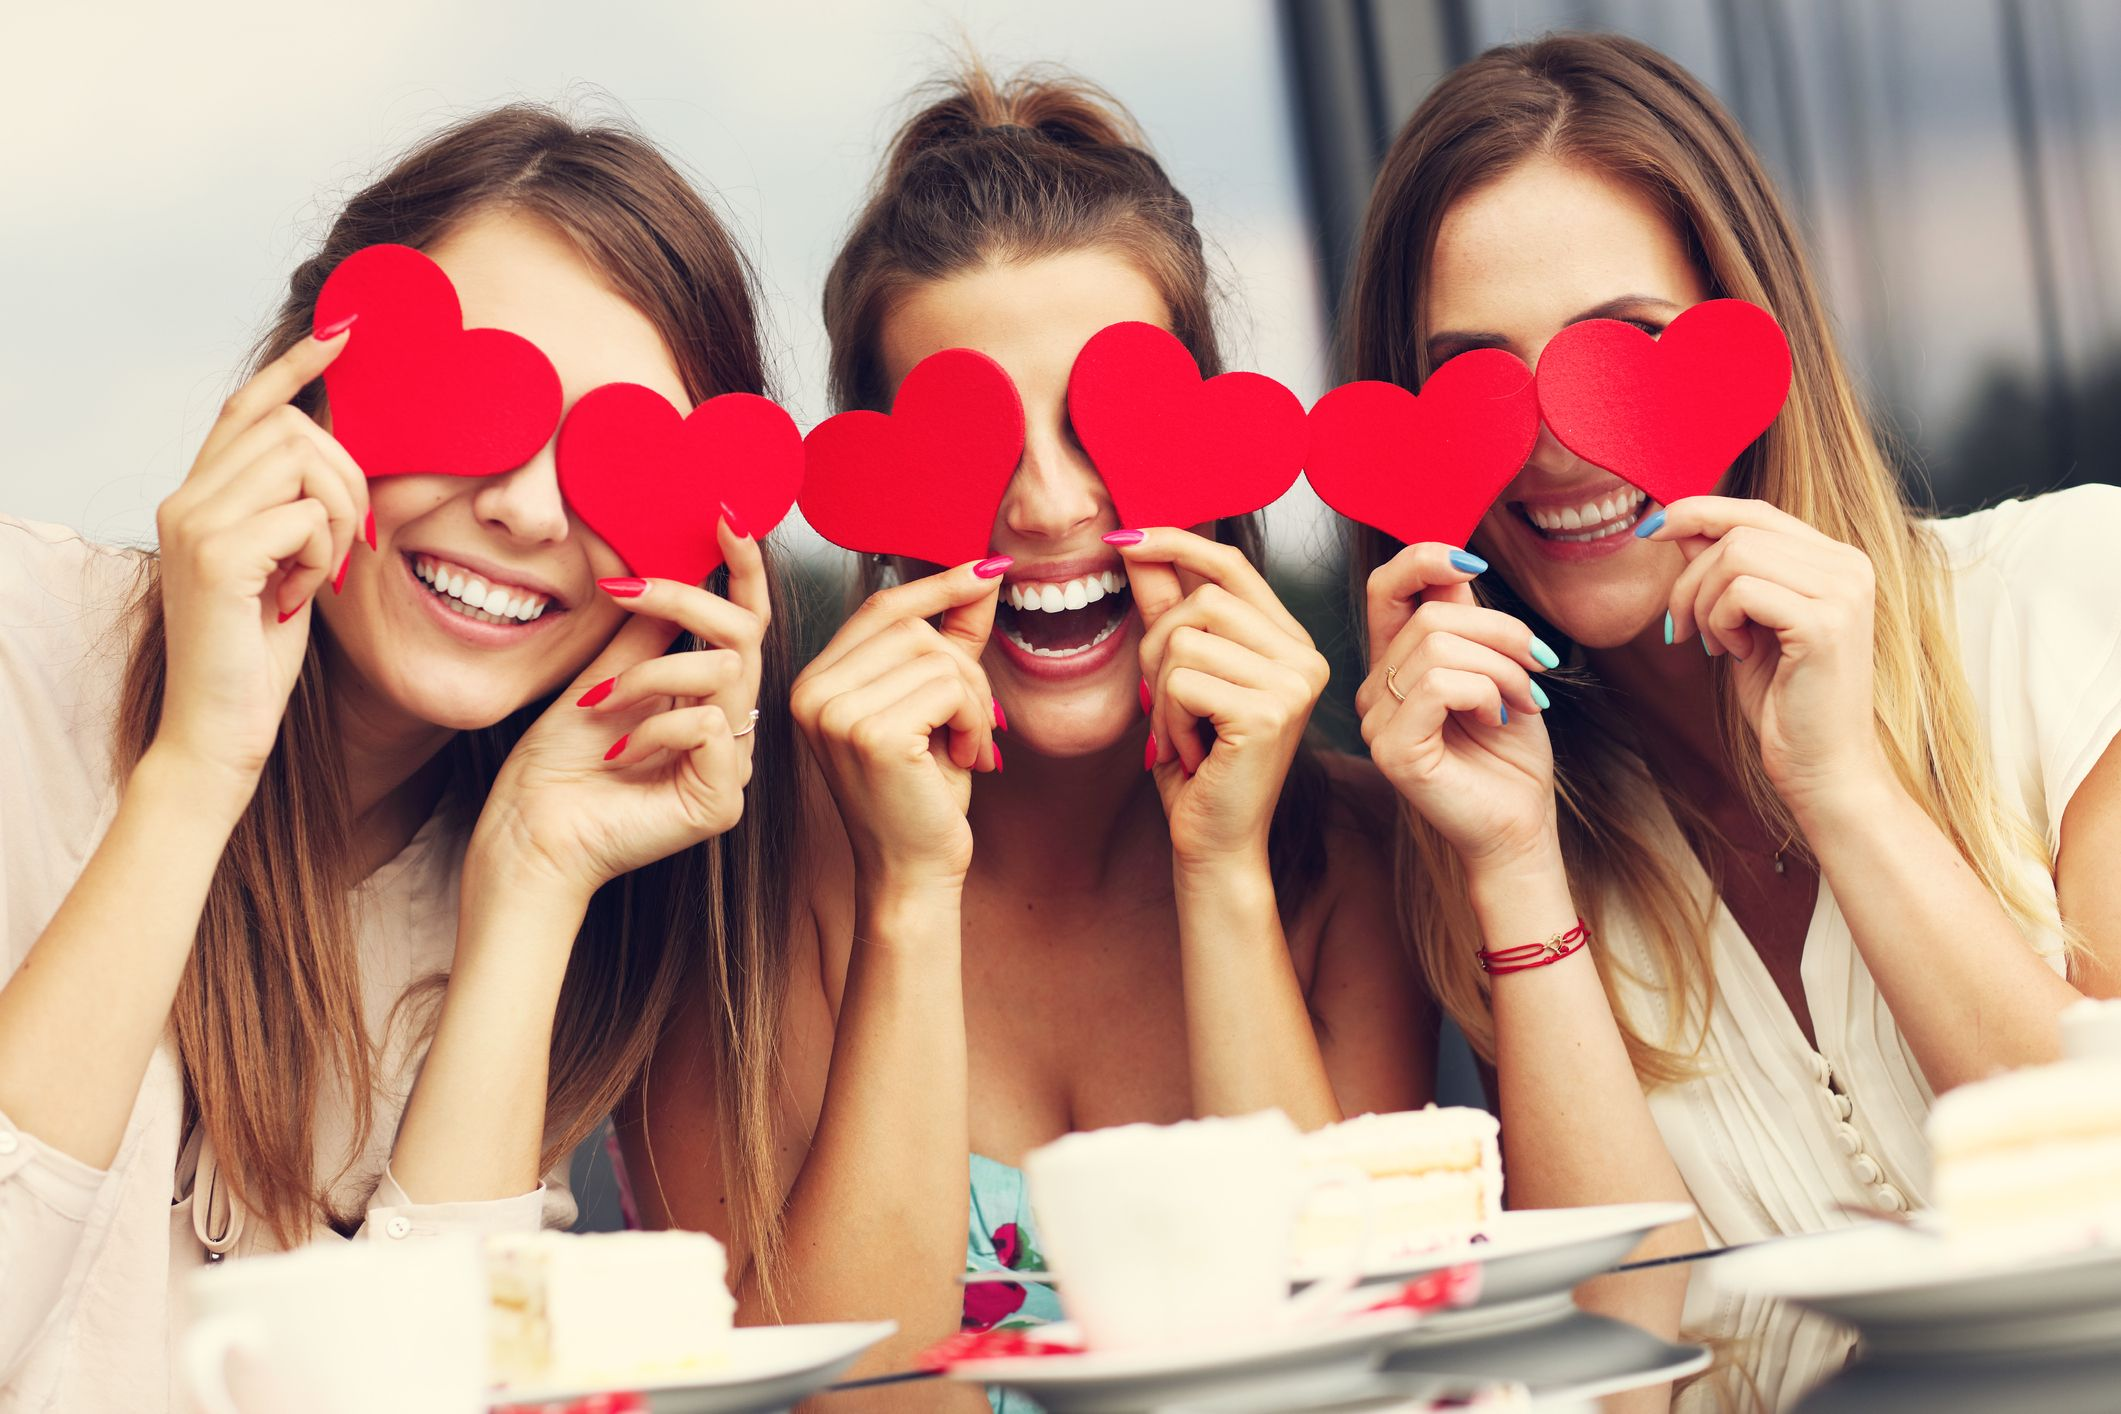 15 Things To Do If You're Single On Valentine's Day